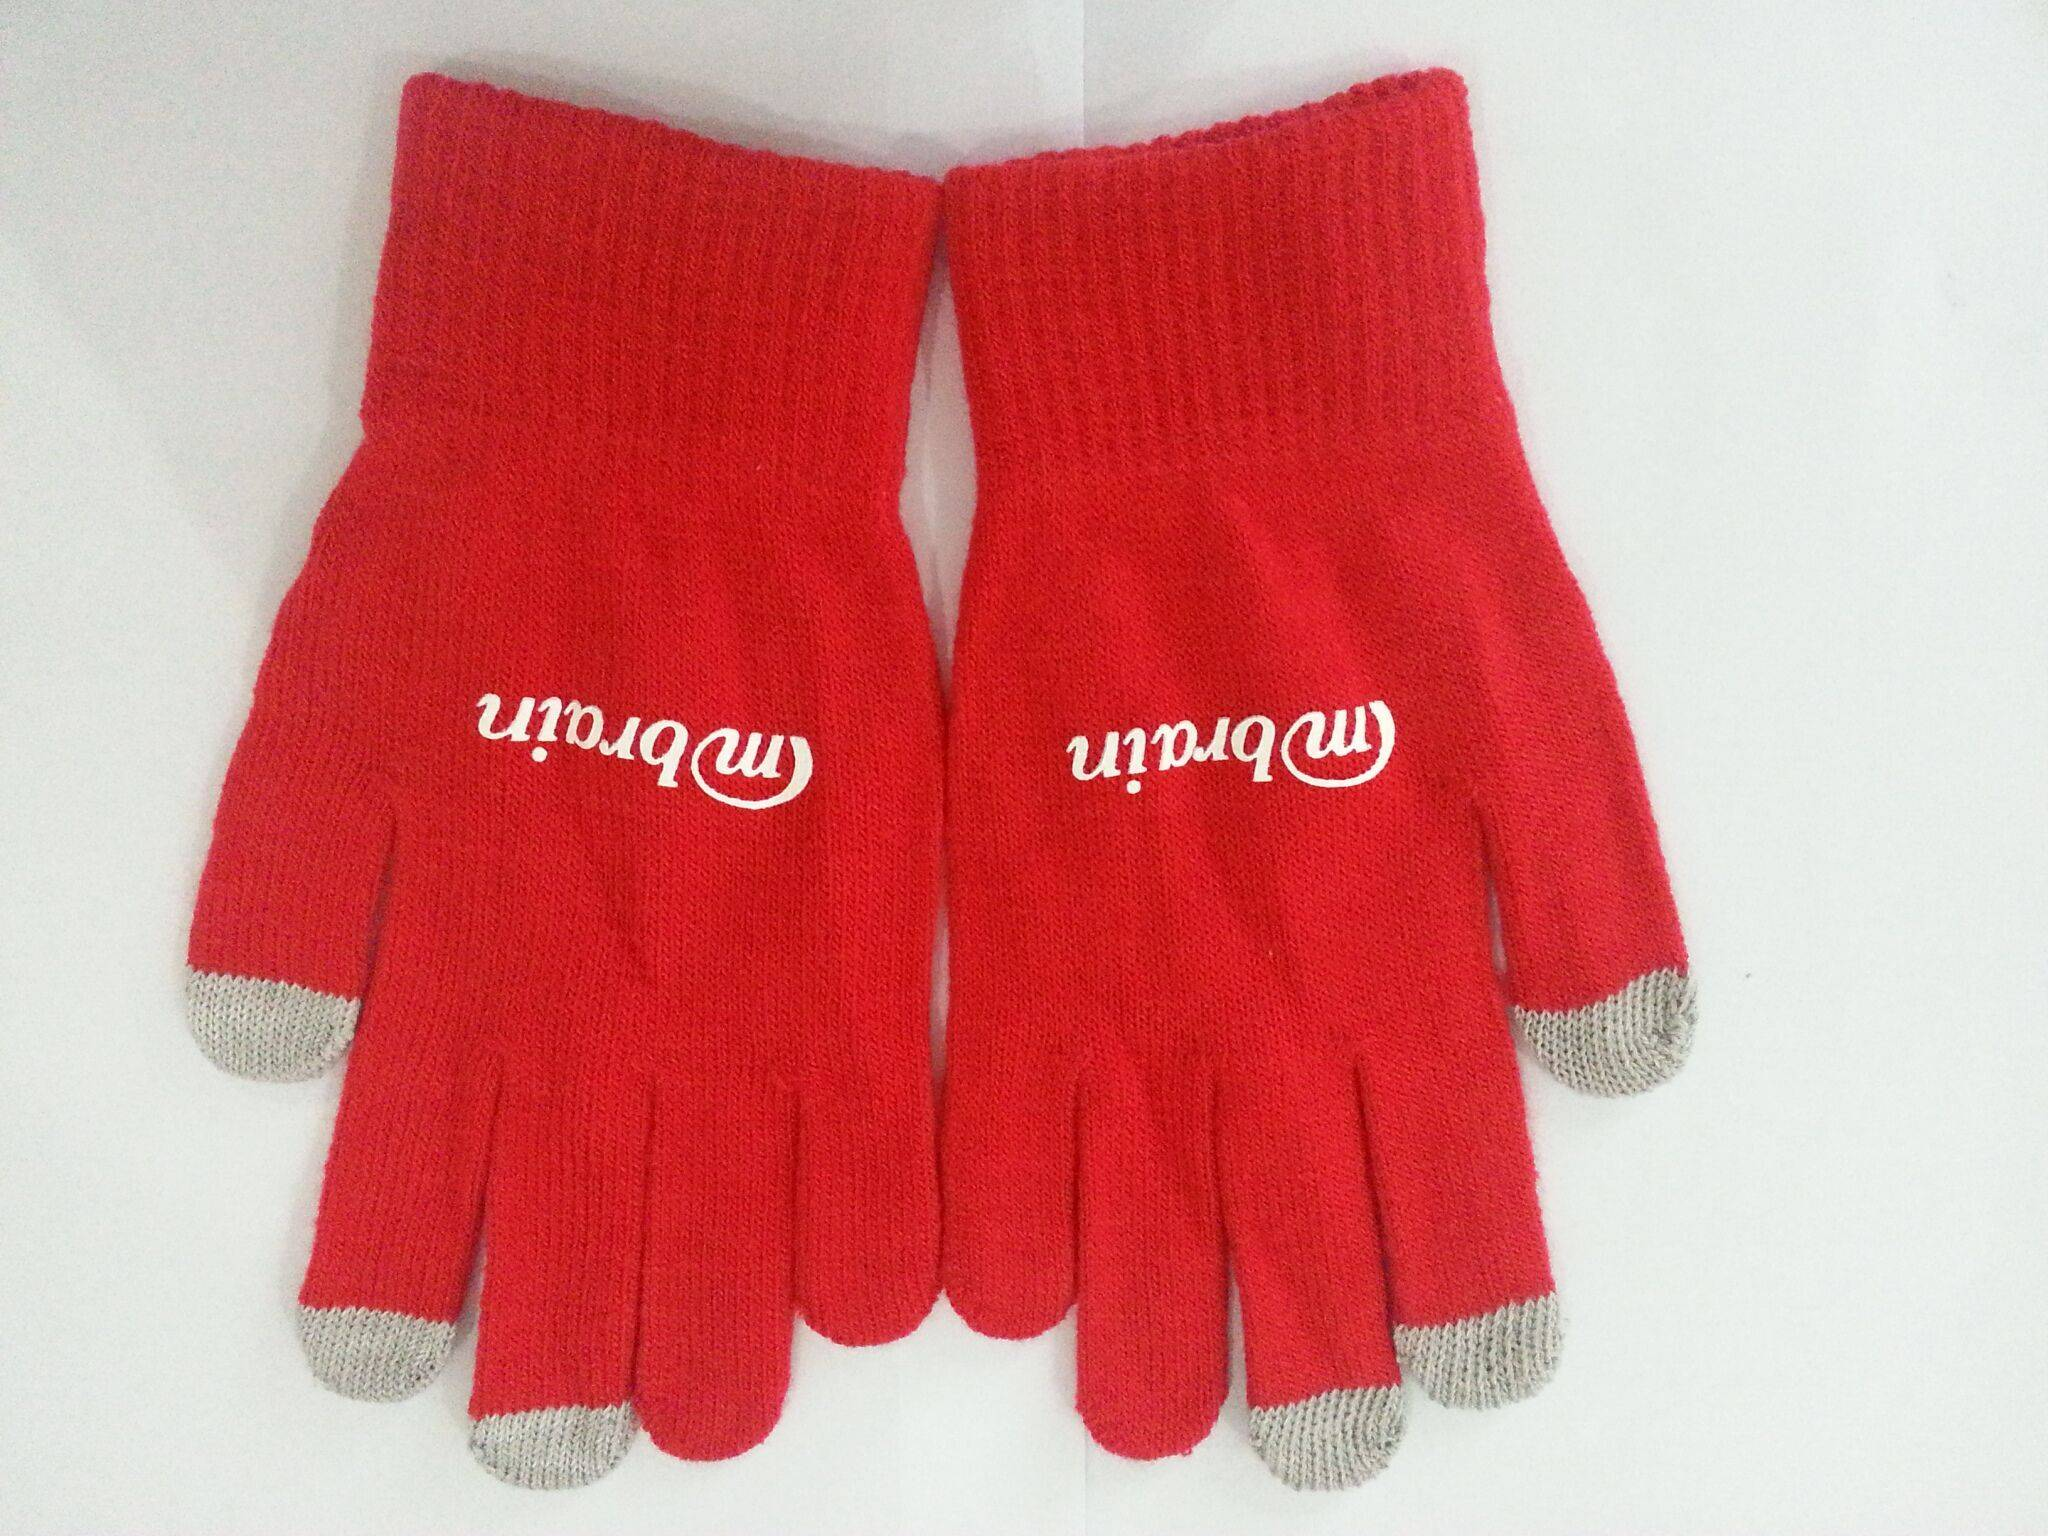 High impact touch screen gloves